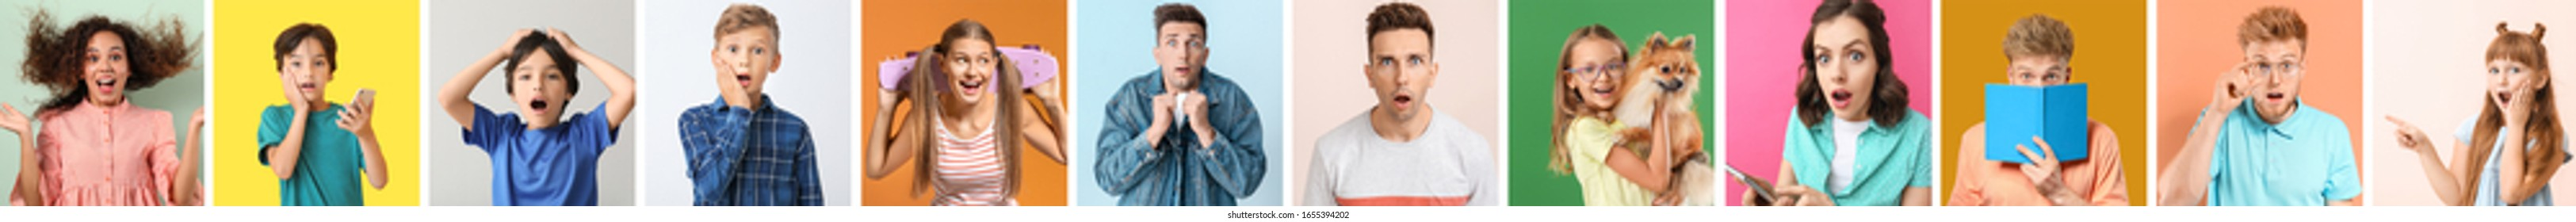 Collage of photos with surprised people